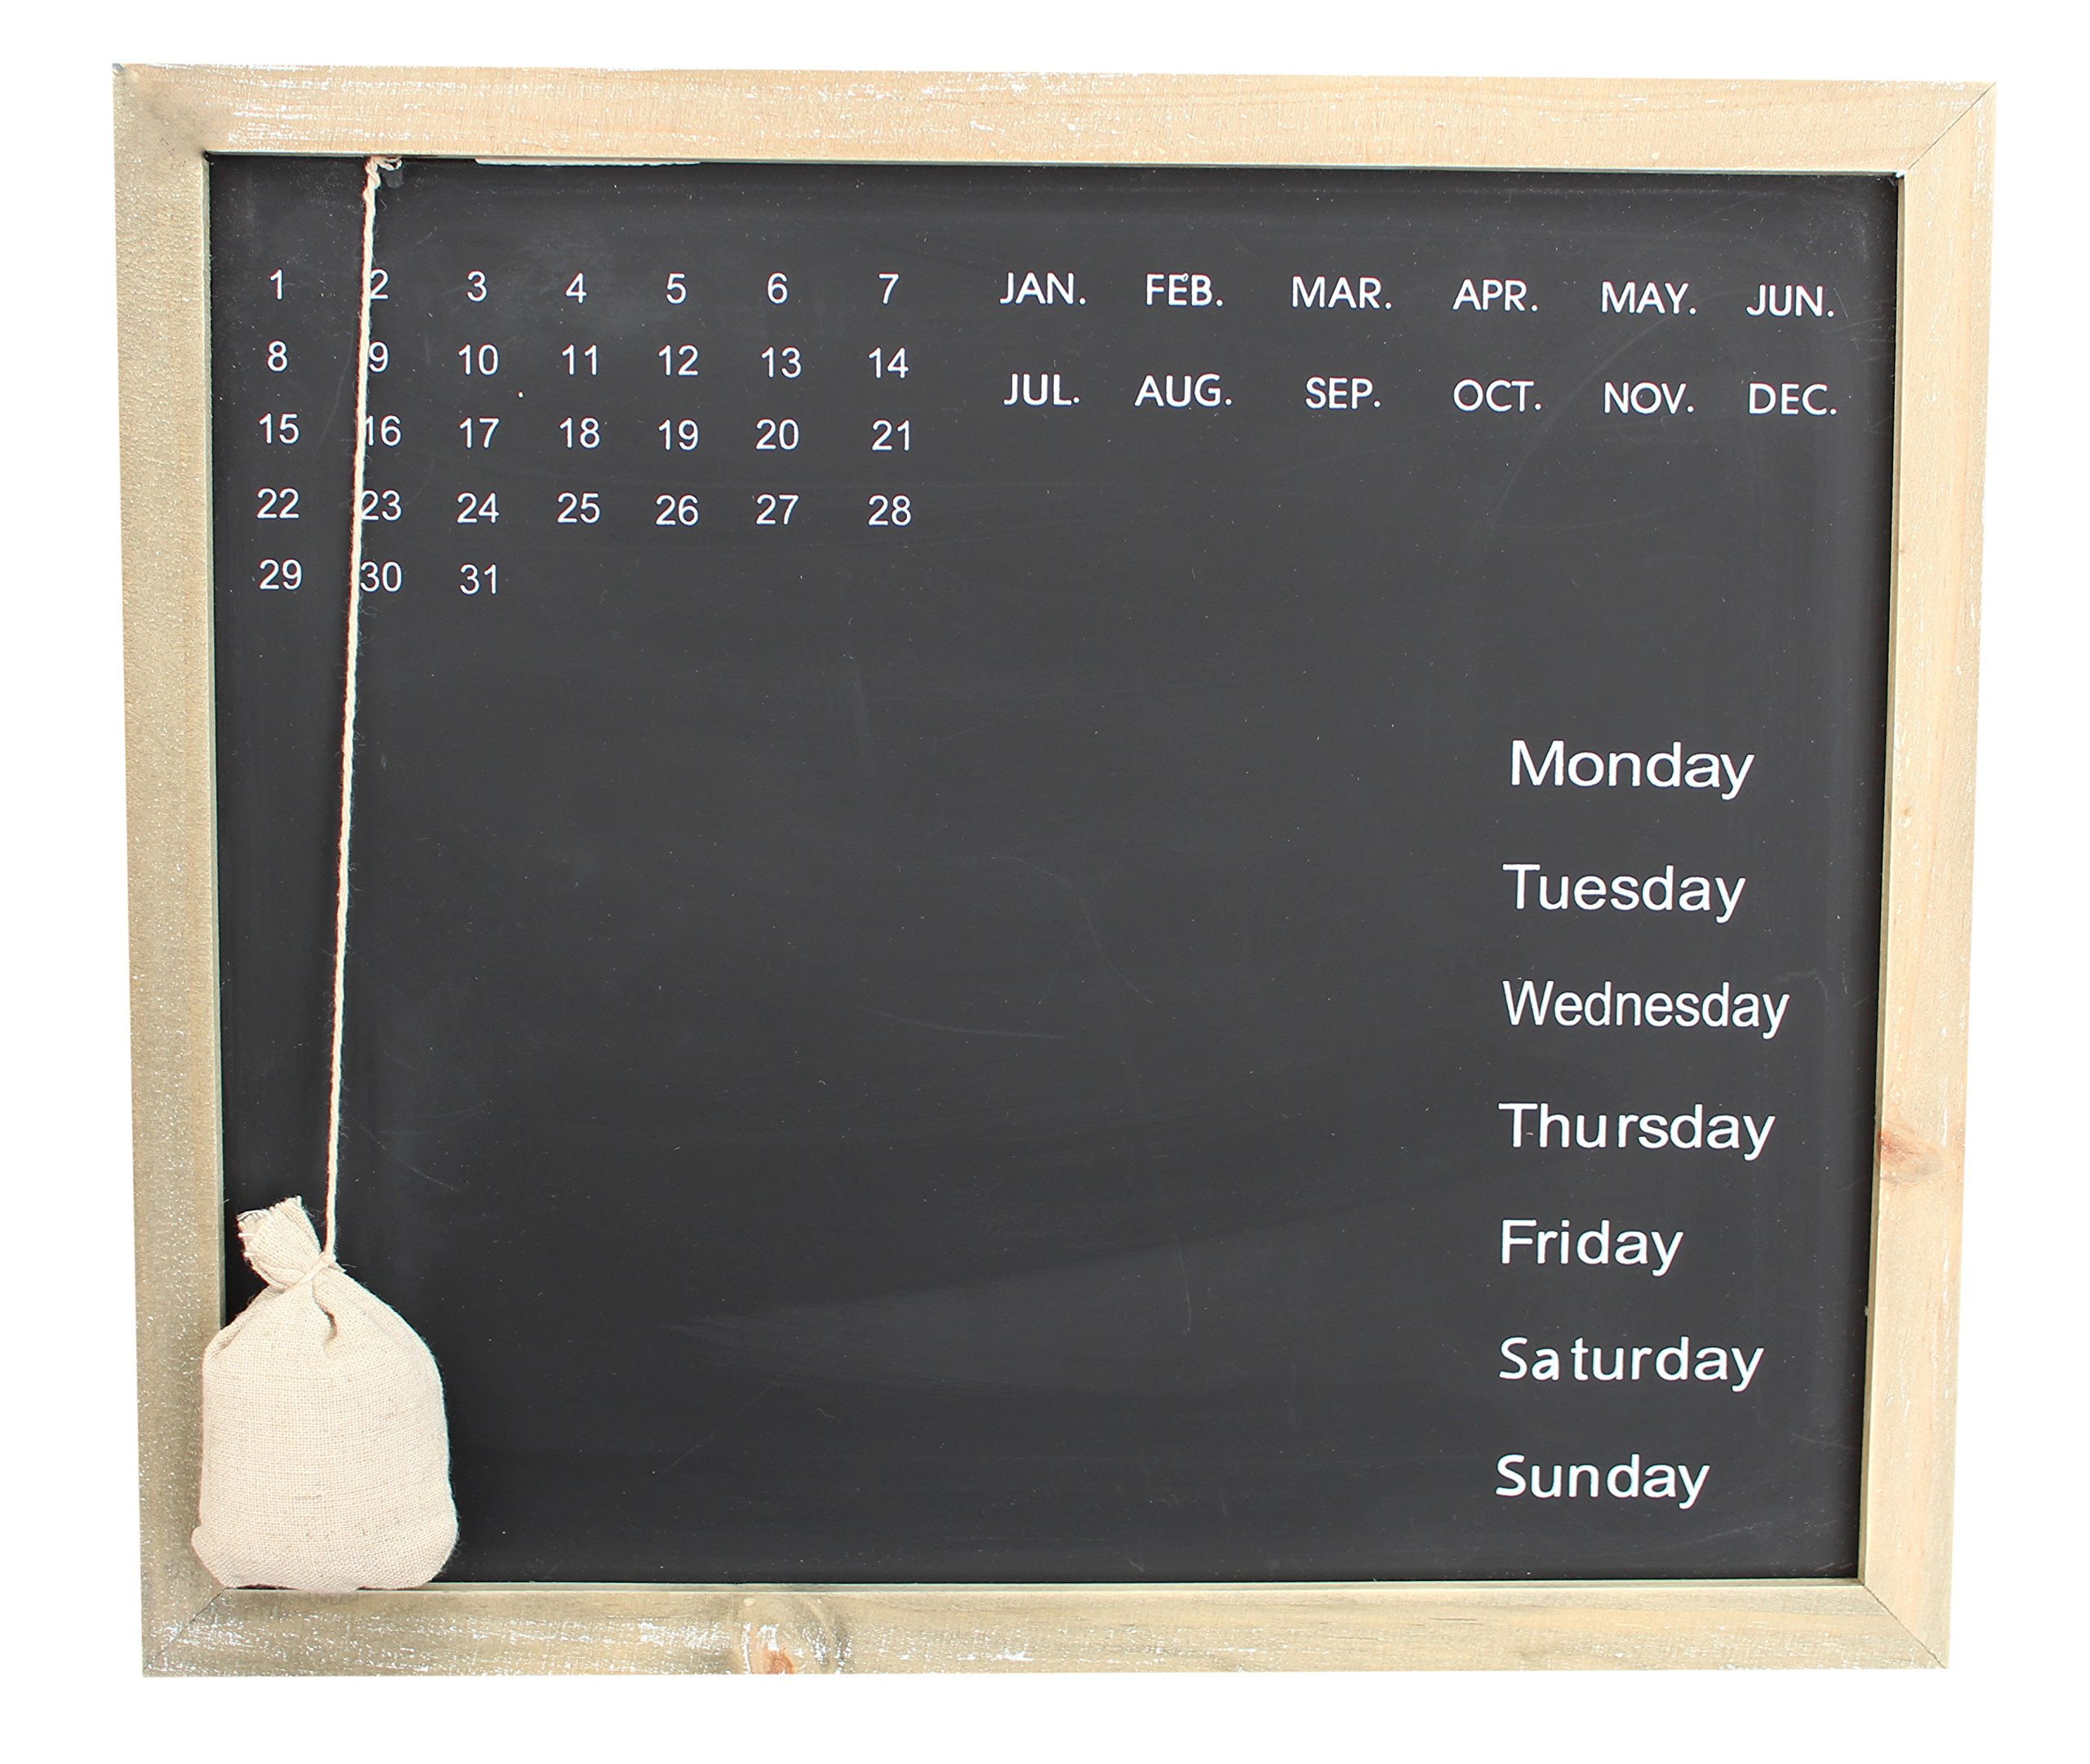 Royal Brands Chalkboard Calendar Wood Frame Chalk Board Daily Message Wall Calendar Decorative Rustic Look Family Blackboard Planner Home Office Or Classroom (Rectangle) by Royal Brands (Image #1)